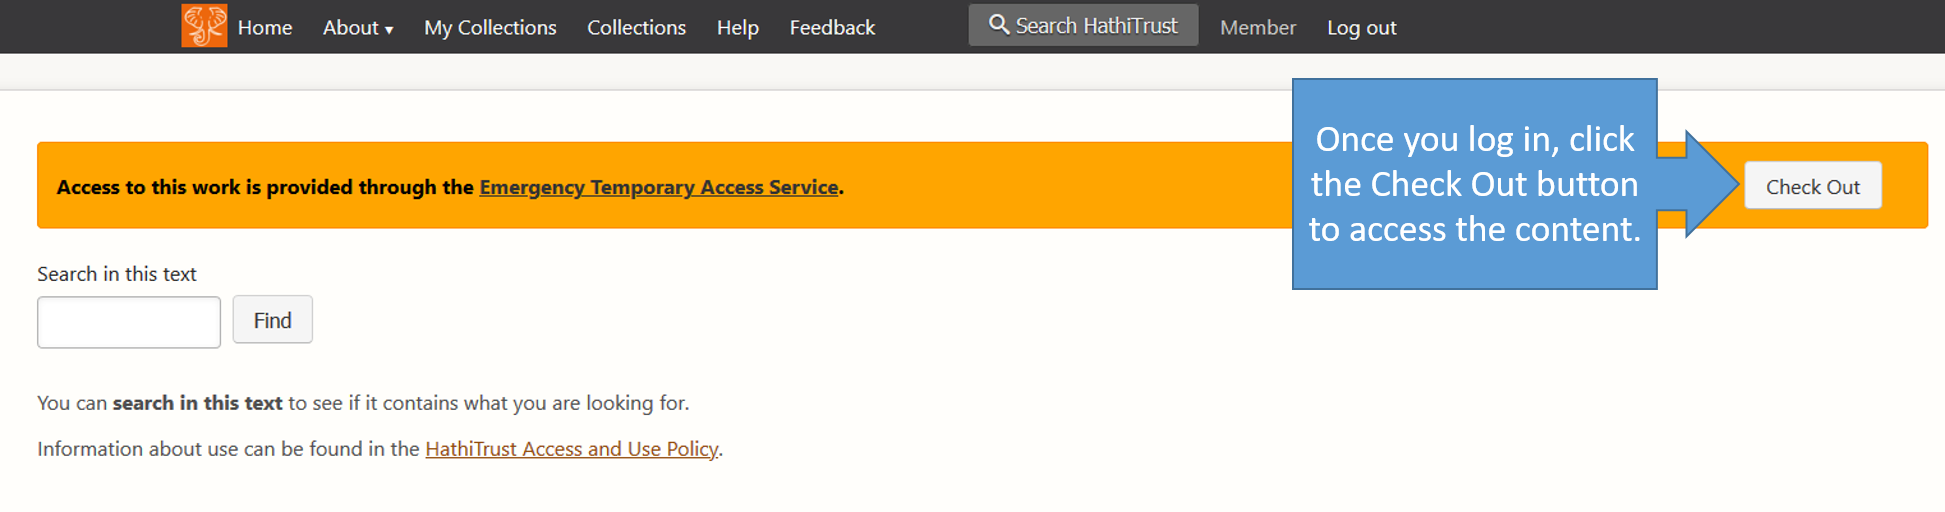 Image of HathiTrust Check Out Screen